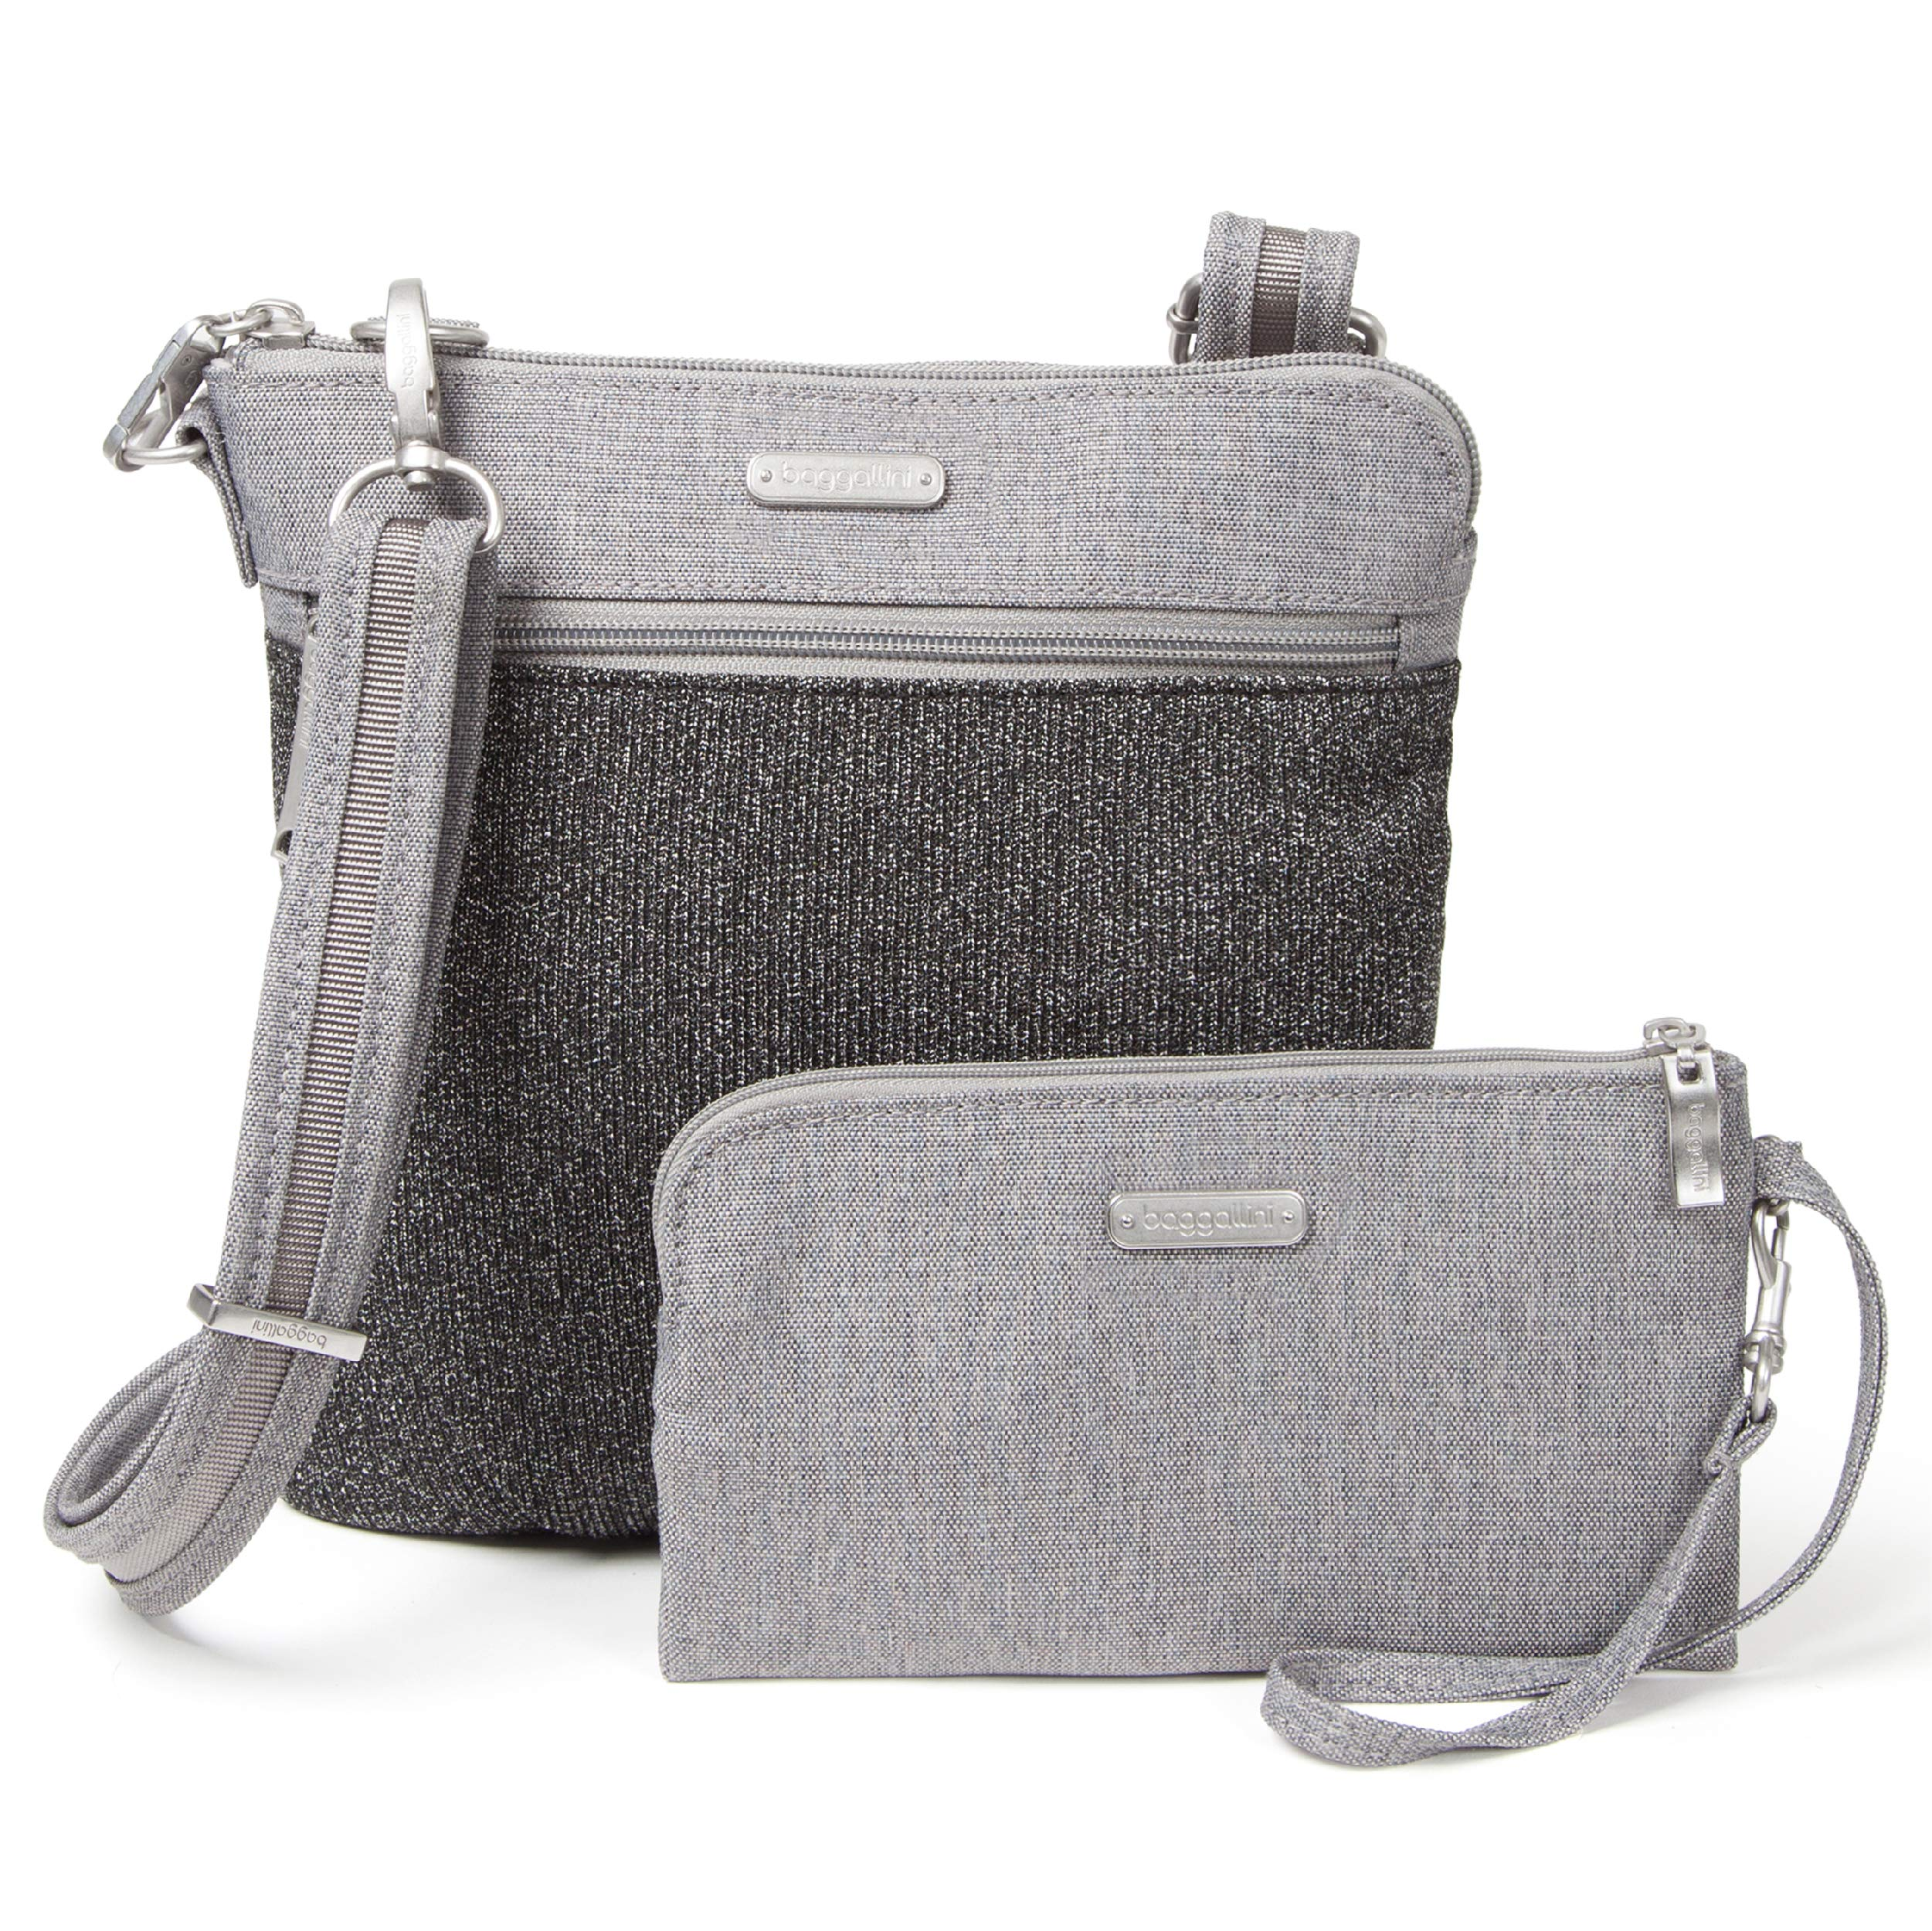 Baggallini Anti-Theft Slim Crossbody Bag - Stylish Long-Strap Purse With Locking Zippers and RFID-Protected Wristlet, Gray Design